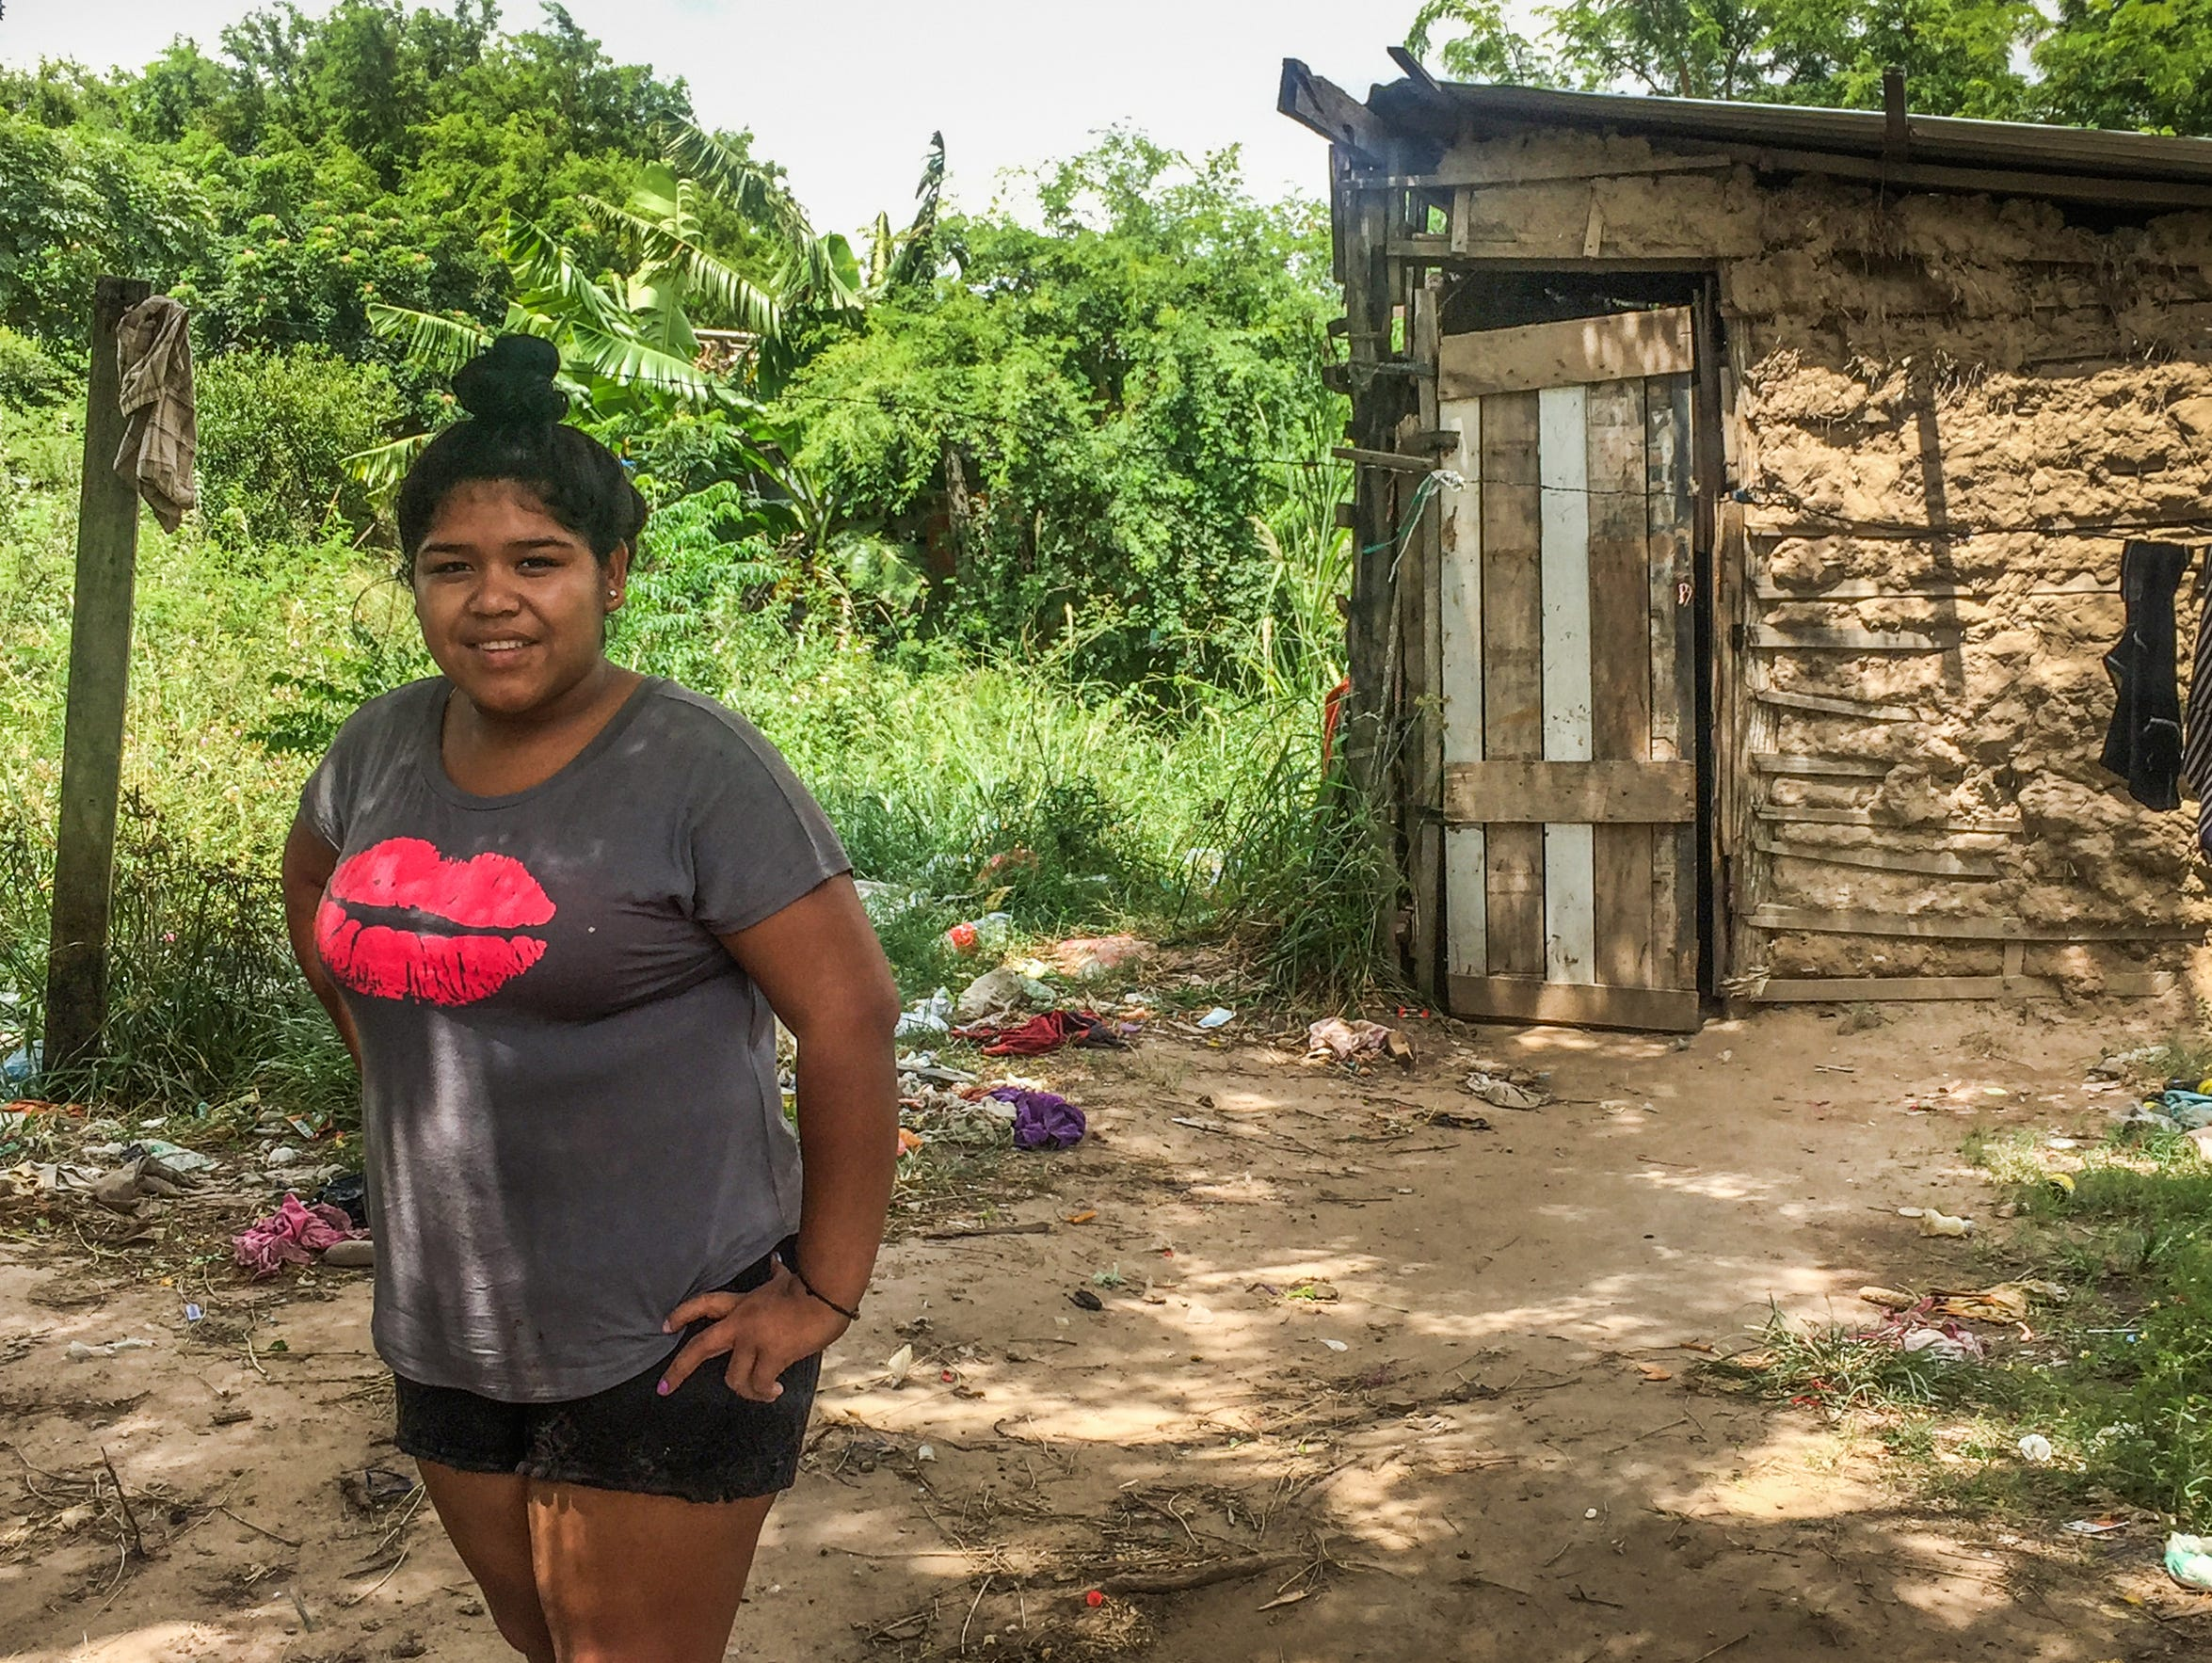 Api, at 17, has never attended school.  She lives in